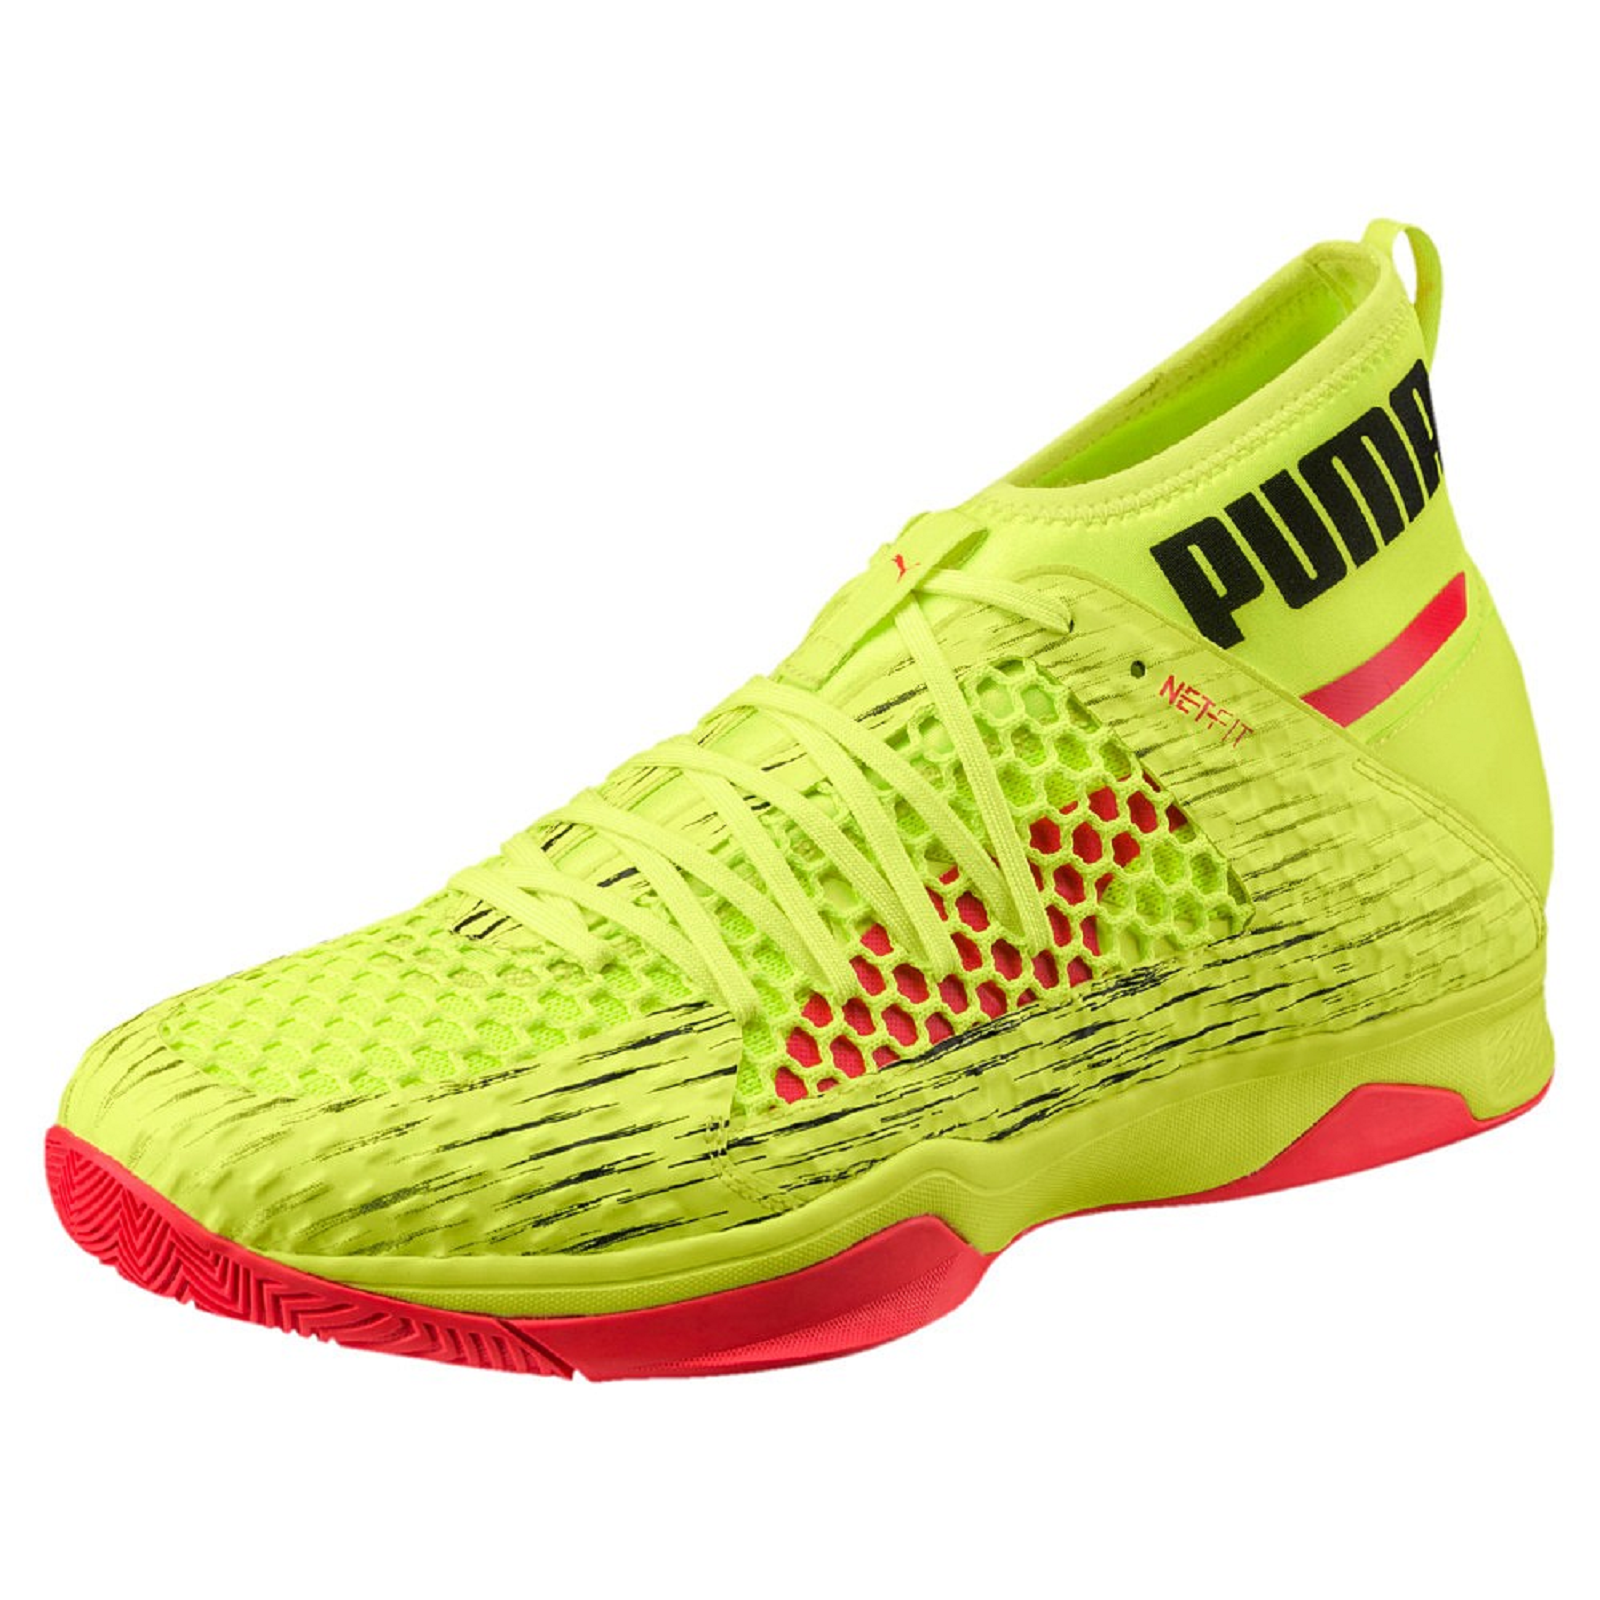 puma evospeed handball